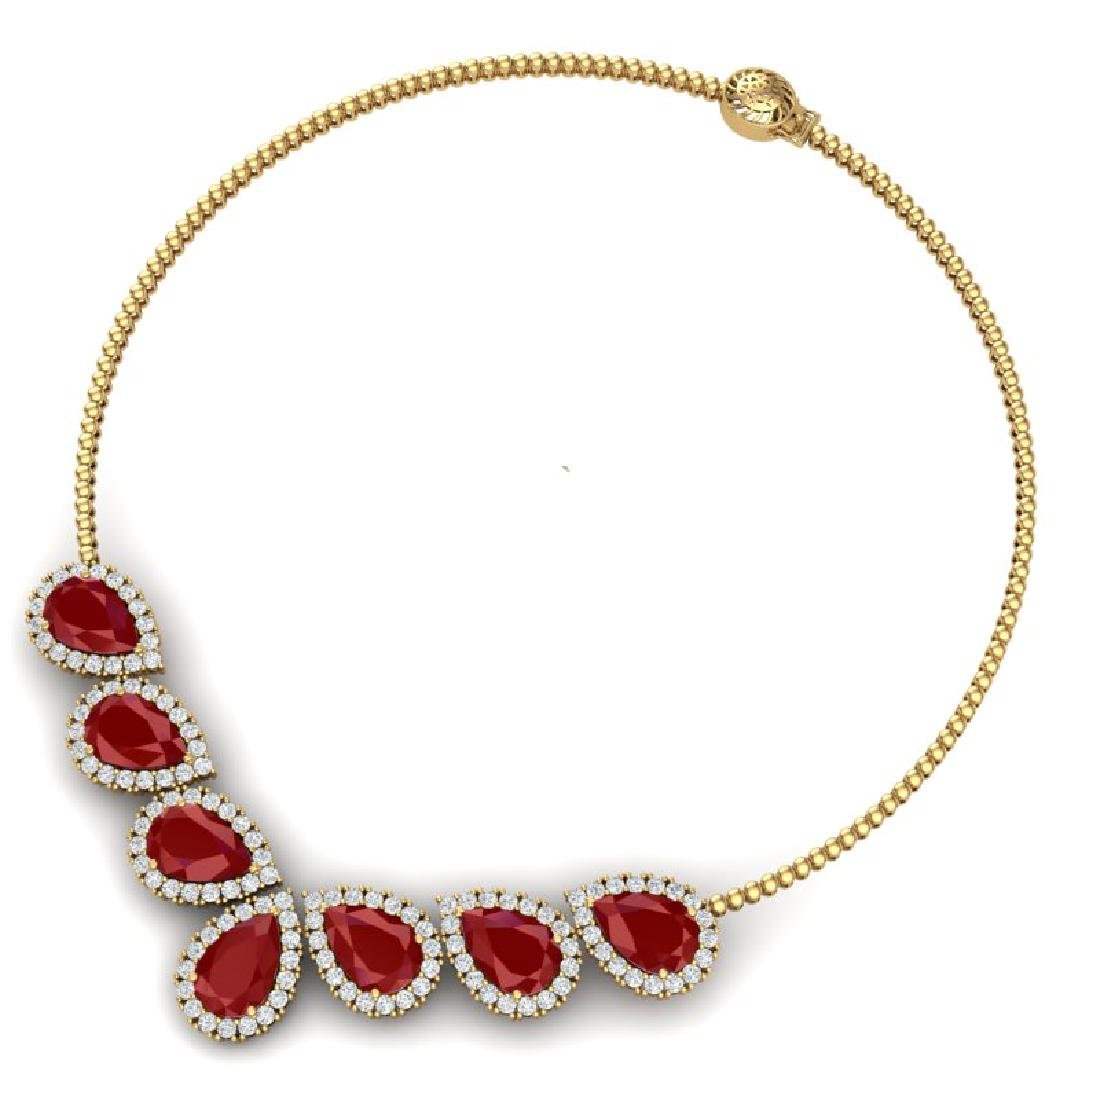 34.72 CTW Royalty Ruby & VS Diamond Necklace 18K Yellow - 3